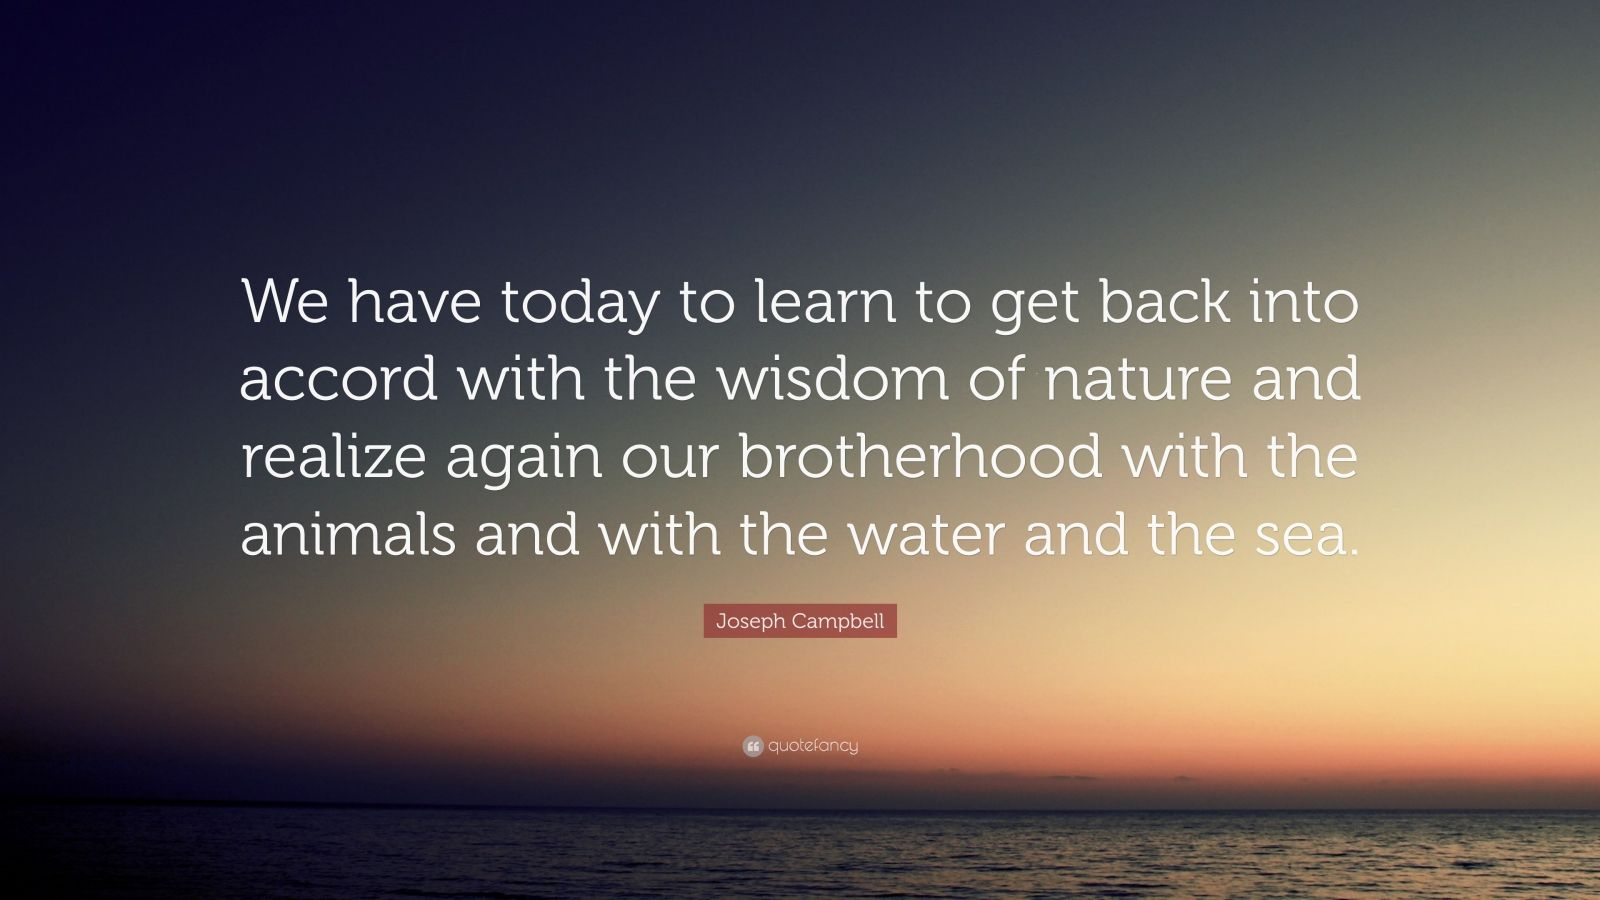 """Joseph Campbell Quote: """"We have today to learn to get back into accord with the wisdom of nature and realize again our brotherhood with the animals and with the water and the sea."""""""